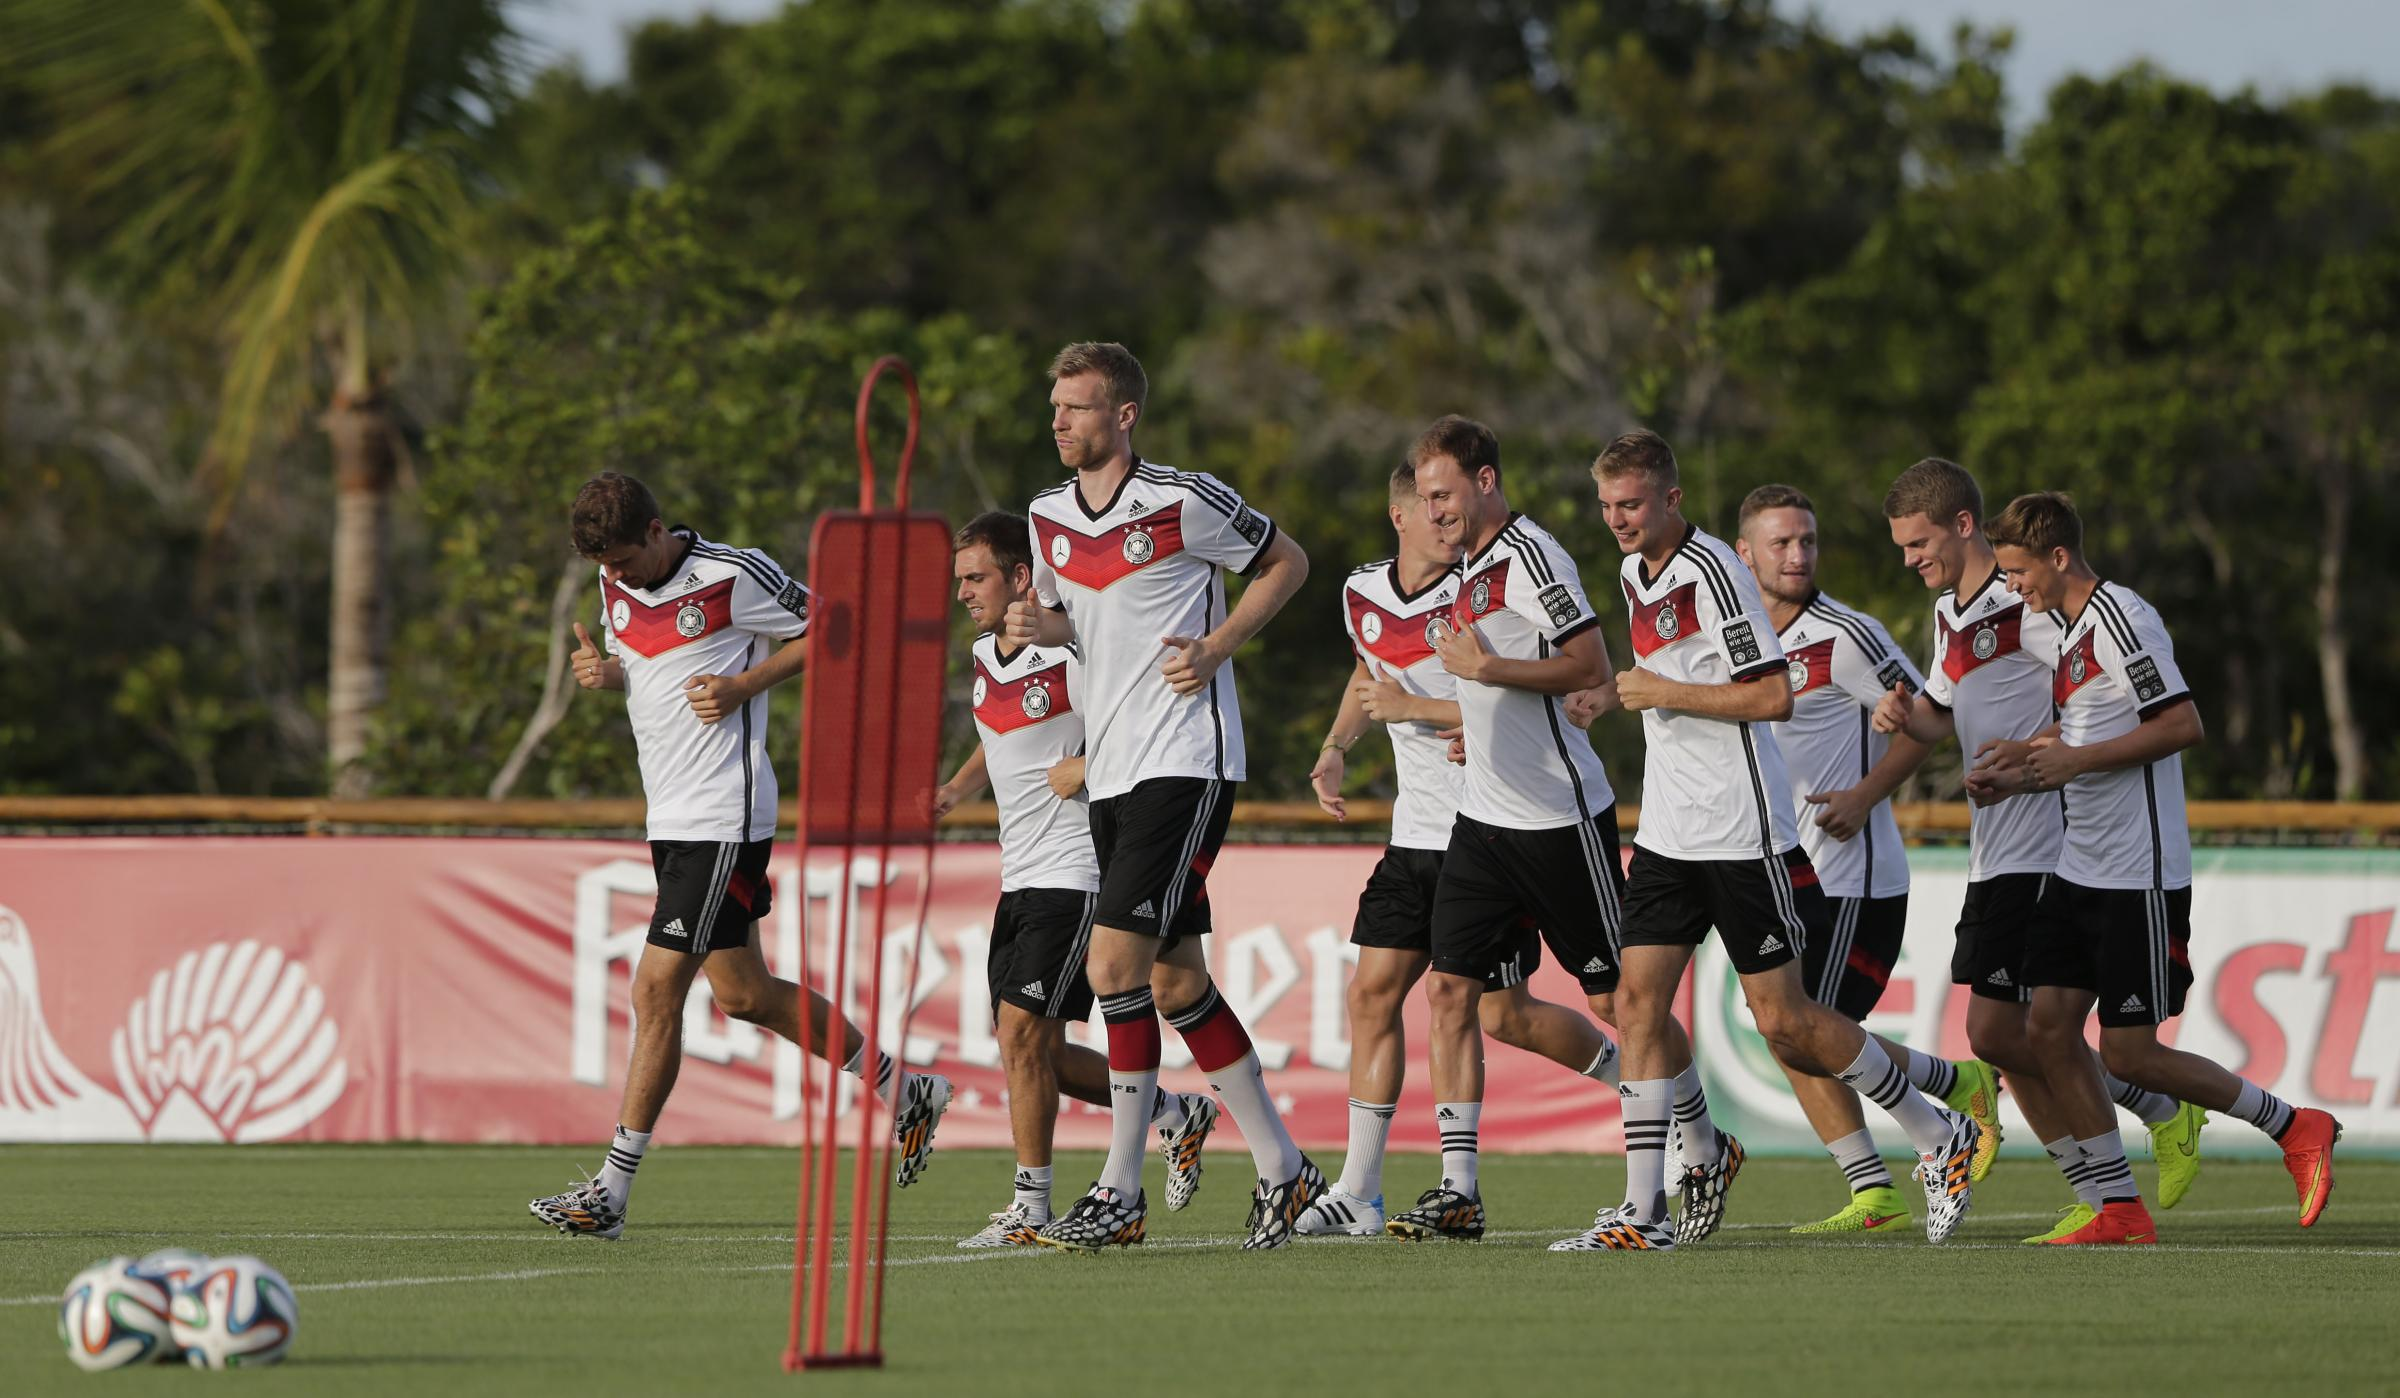 Imperious form – the Germans impressed in their win over Portugal